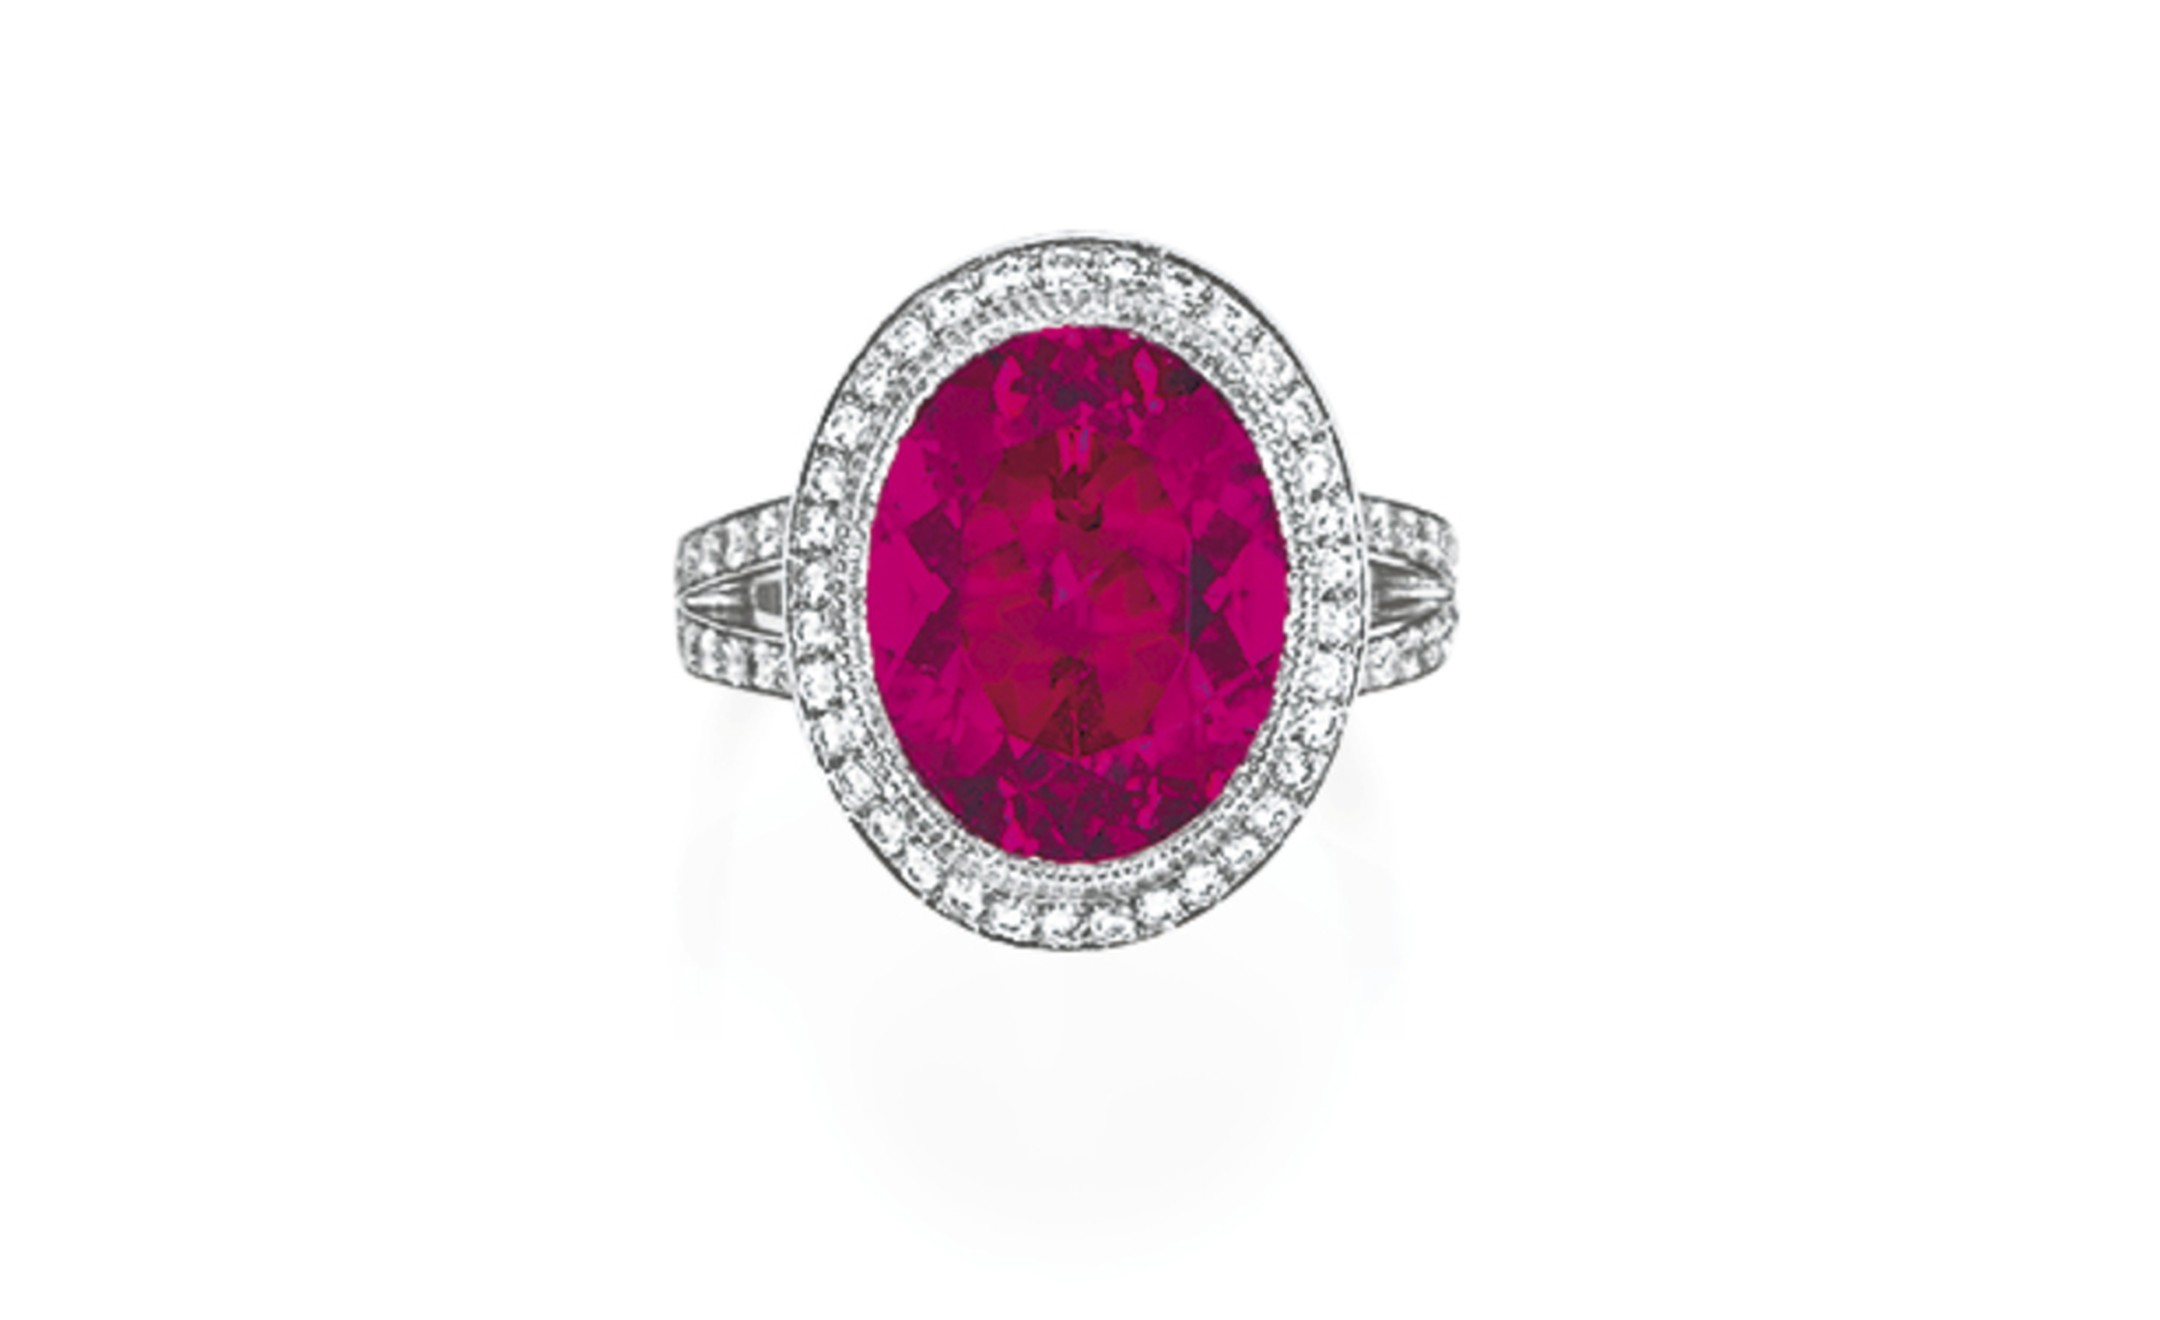 Lot 96. A rubalite tourmaline and diamond ring, by Tiffany & Co. Estimate 2,000 - 3,000 U.S. dollars. SOLD FOR $7,500